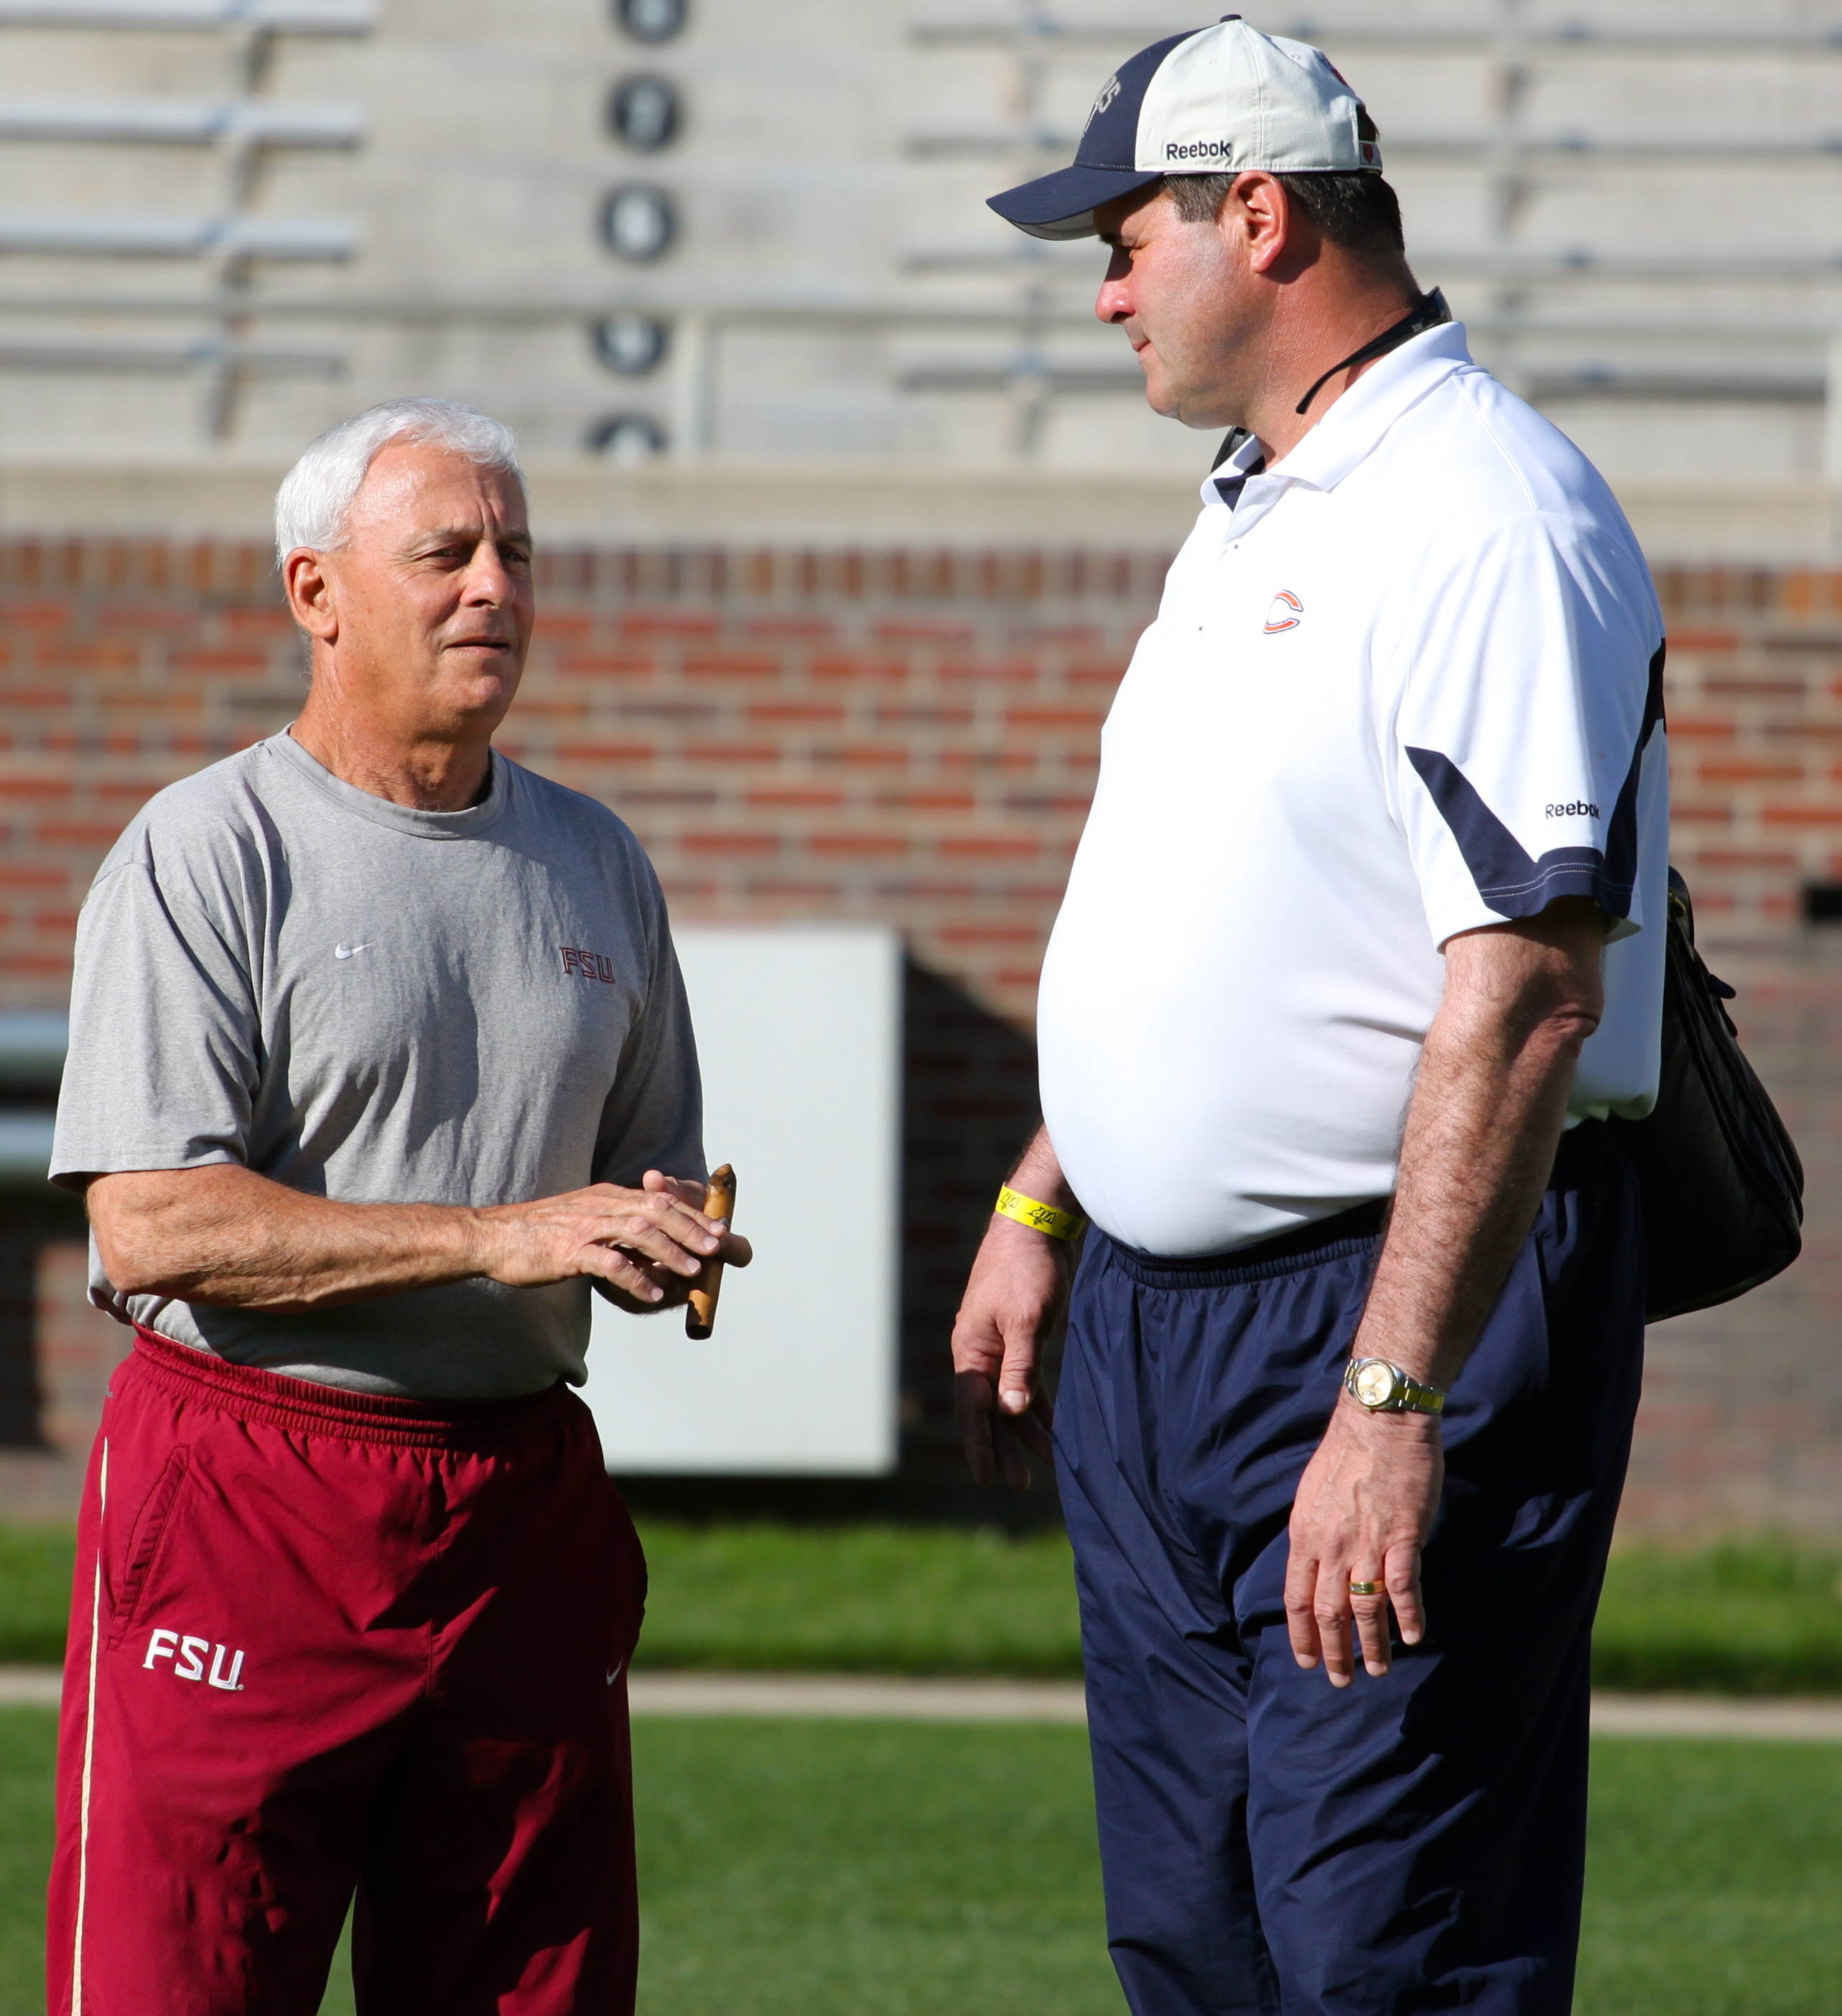 Florida State offensive line coach Rick Trickett talking with Chicago Bears offensive line coach Mike Tice.